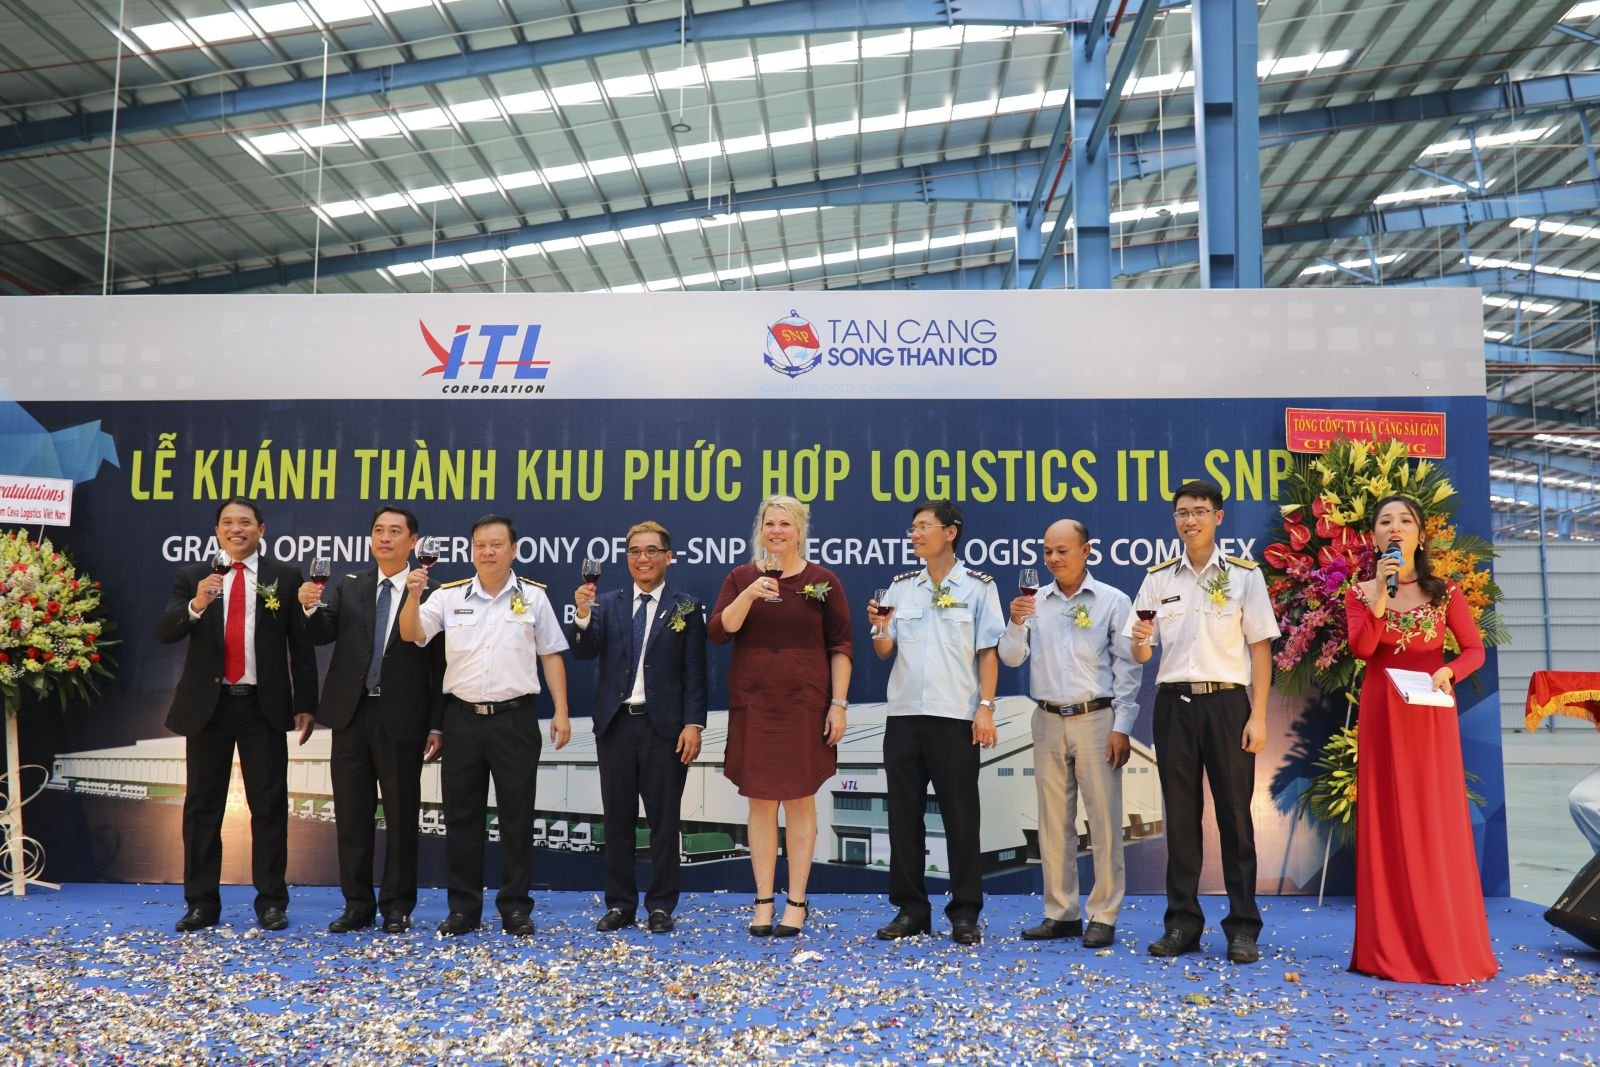 ITL Corporation - GRAND OPENING CEREMONY OF ITL-SNP